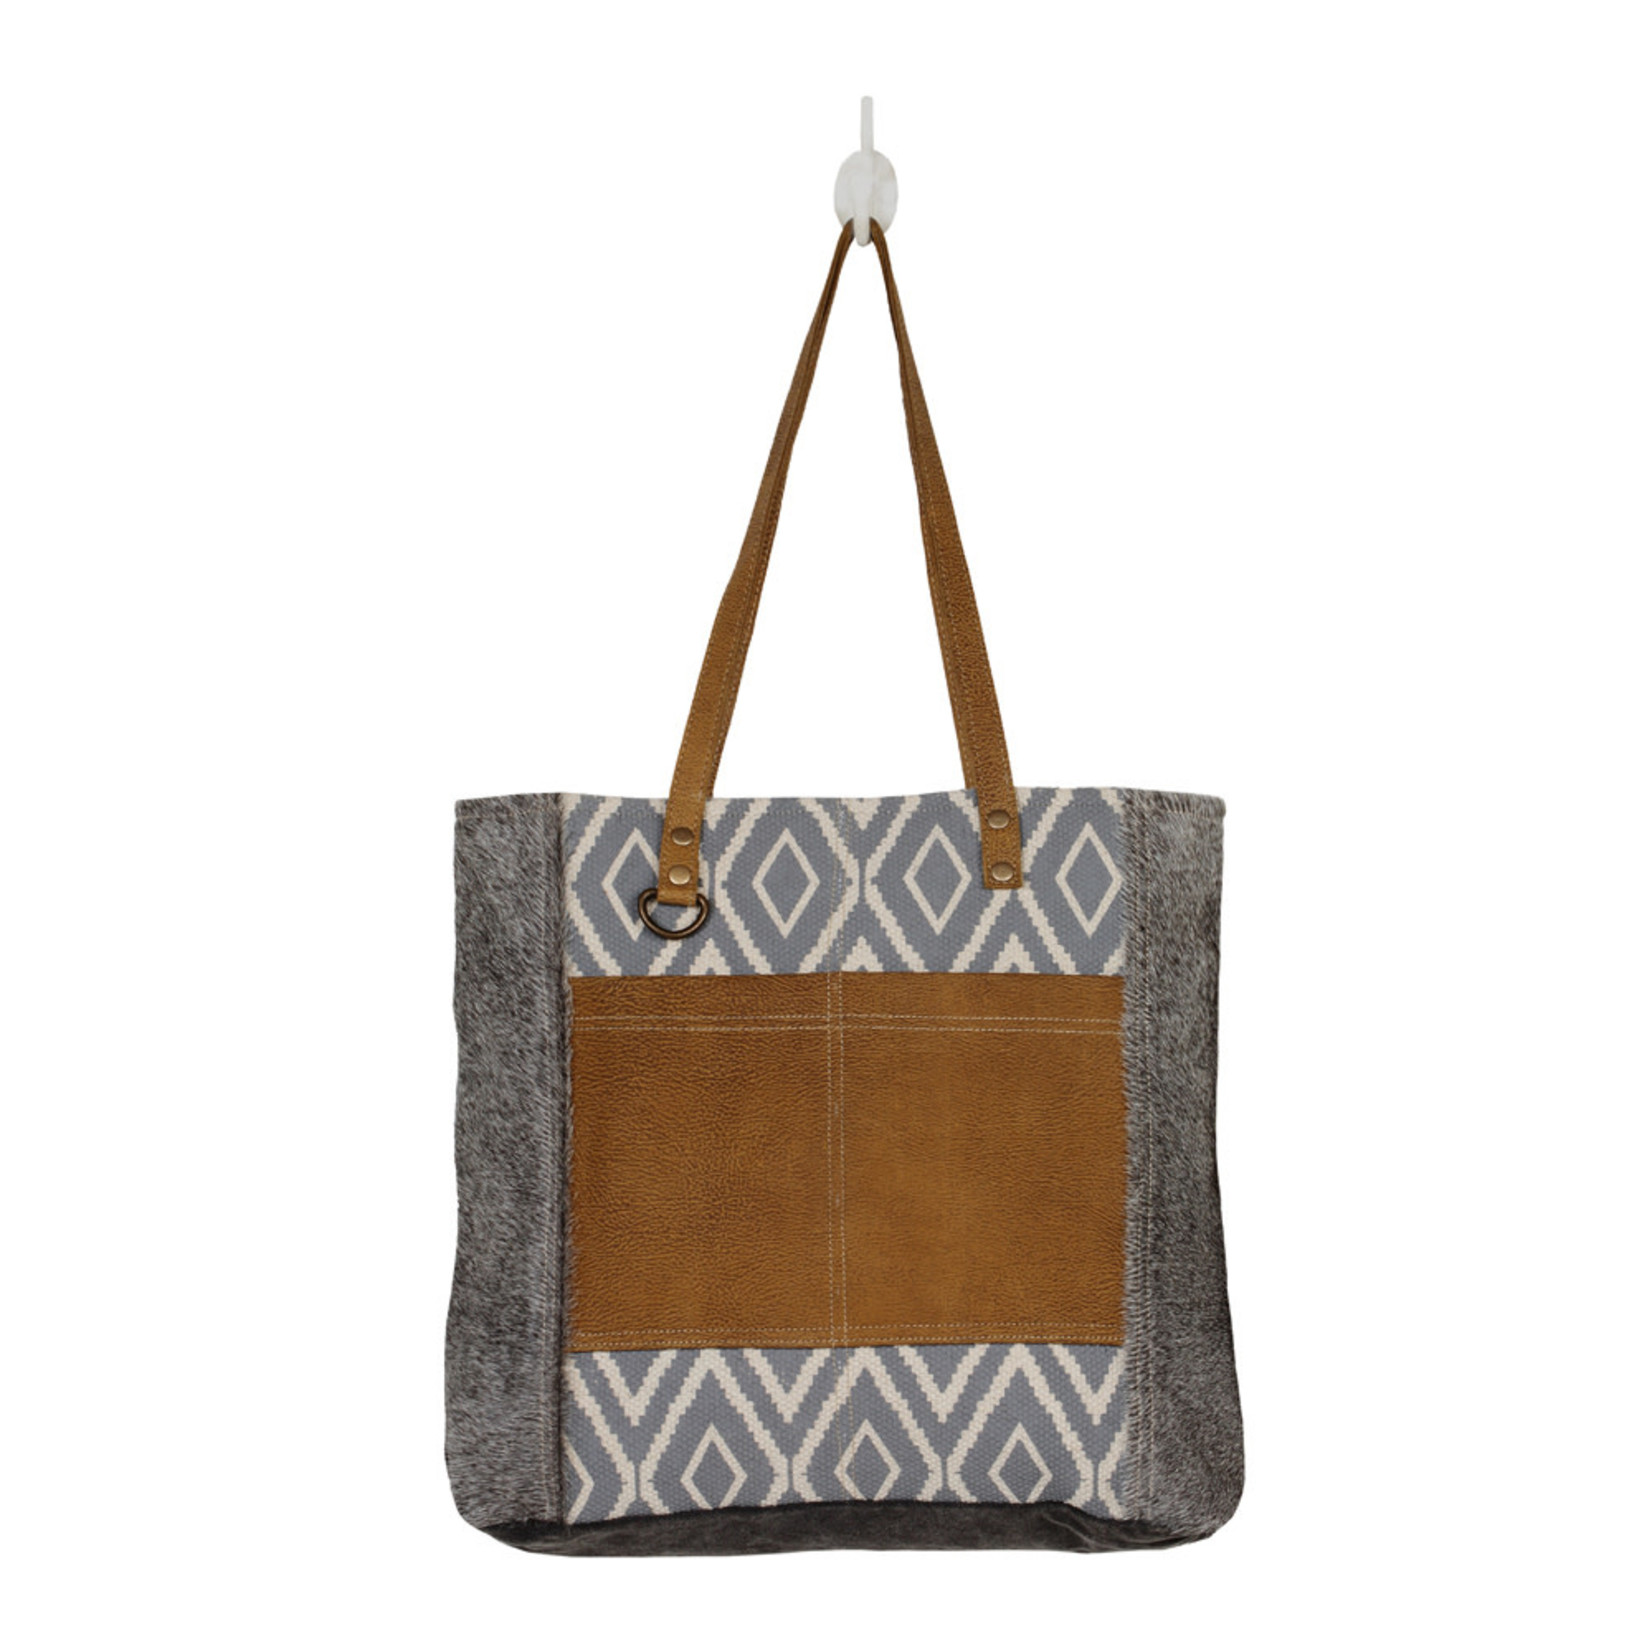 Myra Bags S-2624 Transformation Tote Bag